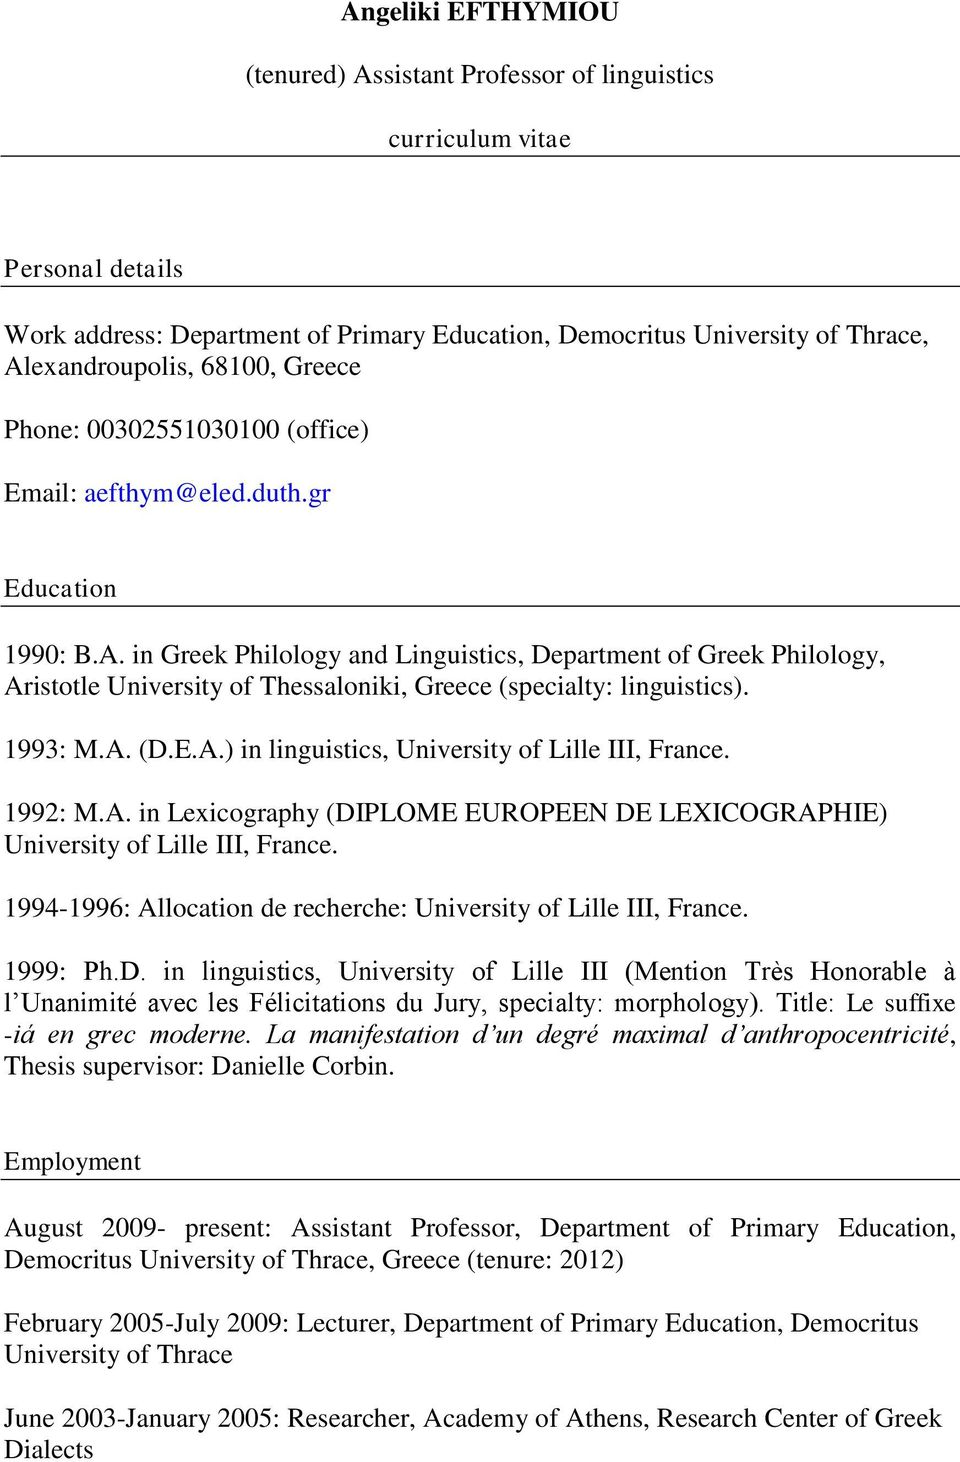 in Greek Philology and Linguistics, Department of Greek Philology, Aristotle University of Thessaloniki, Greece (specialty: linguistics). 1993: M.A. (D.E.A.) in linguistics, University of Lille III, France.